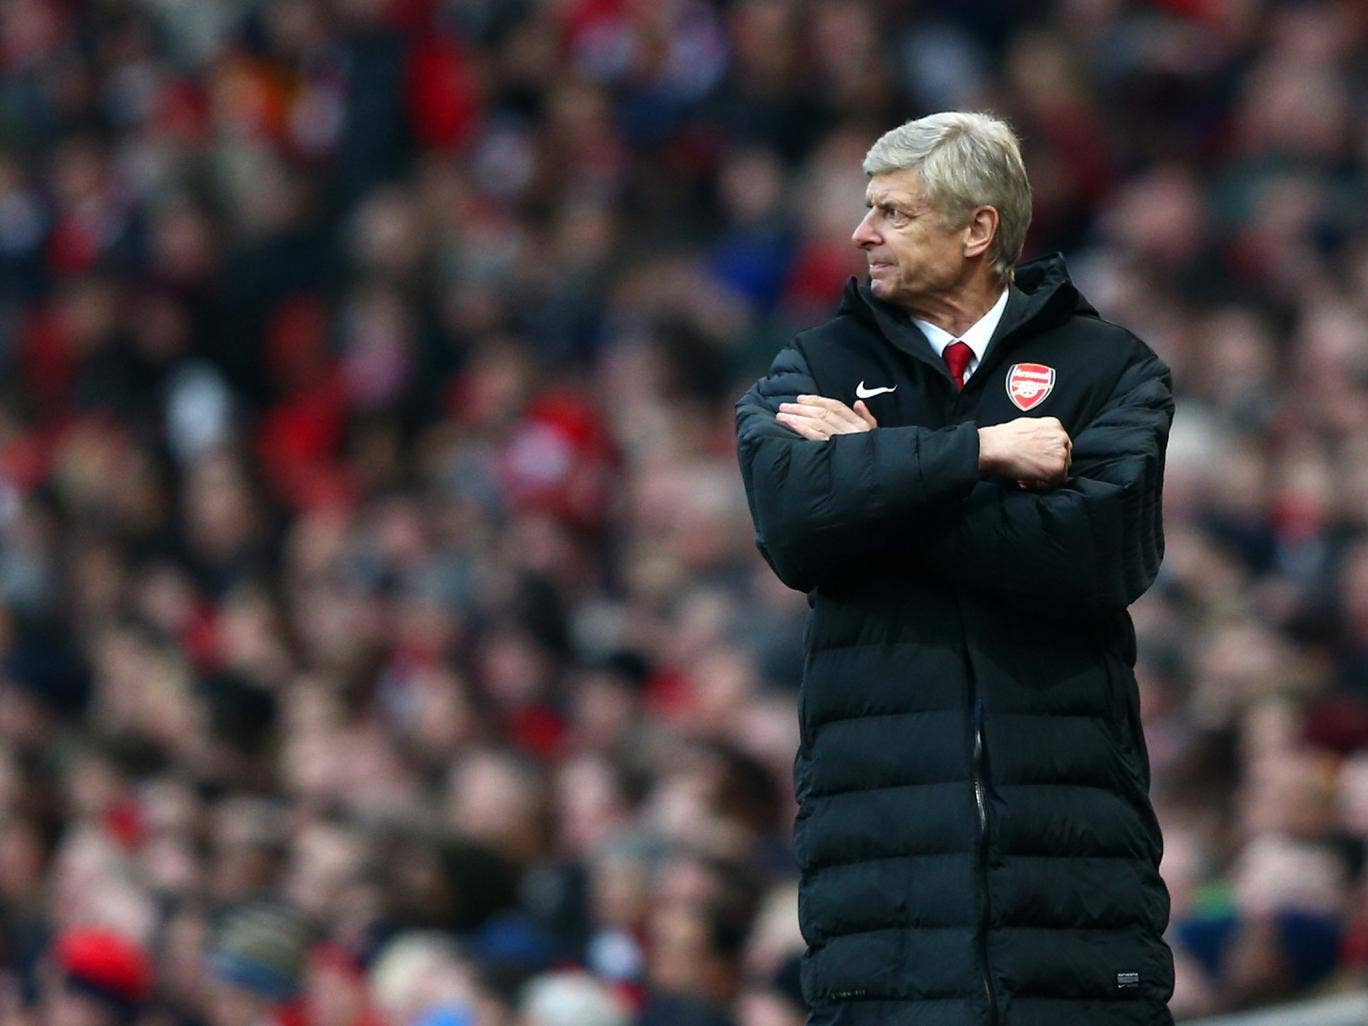 Wenger is facing one of the biggest tests of his 16-year tenure this season